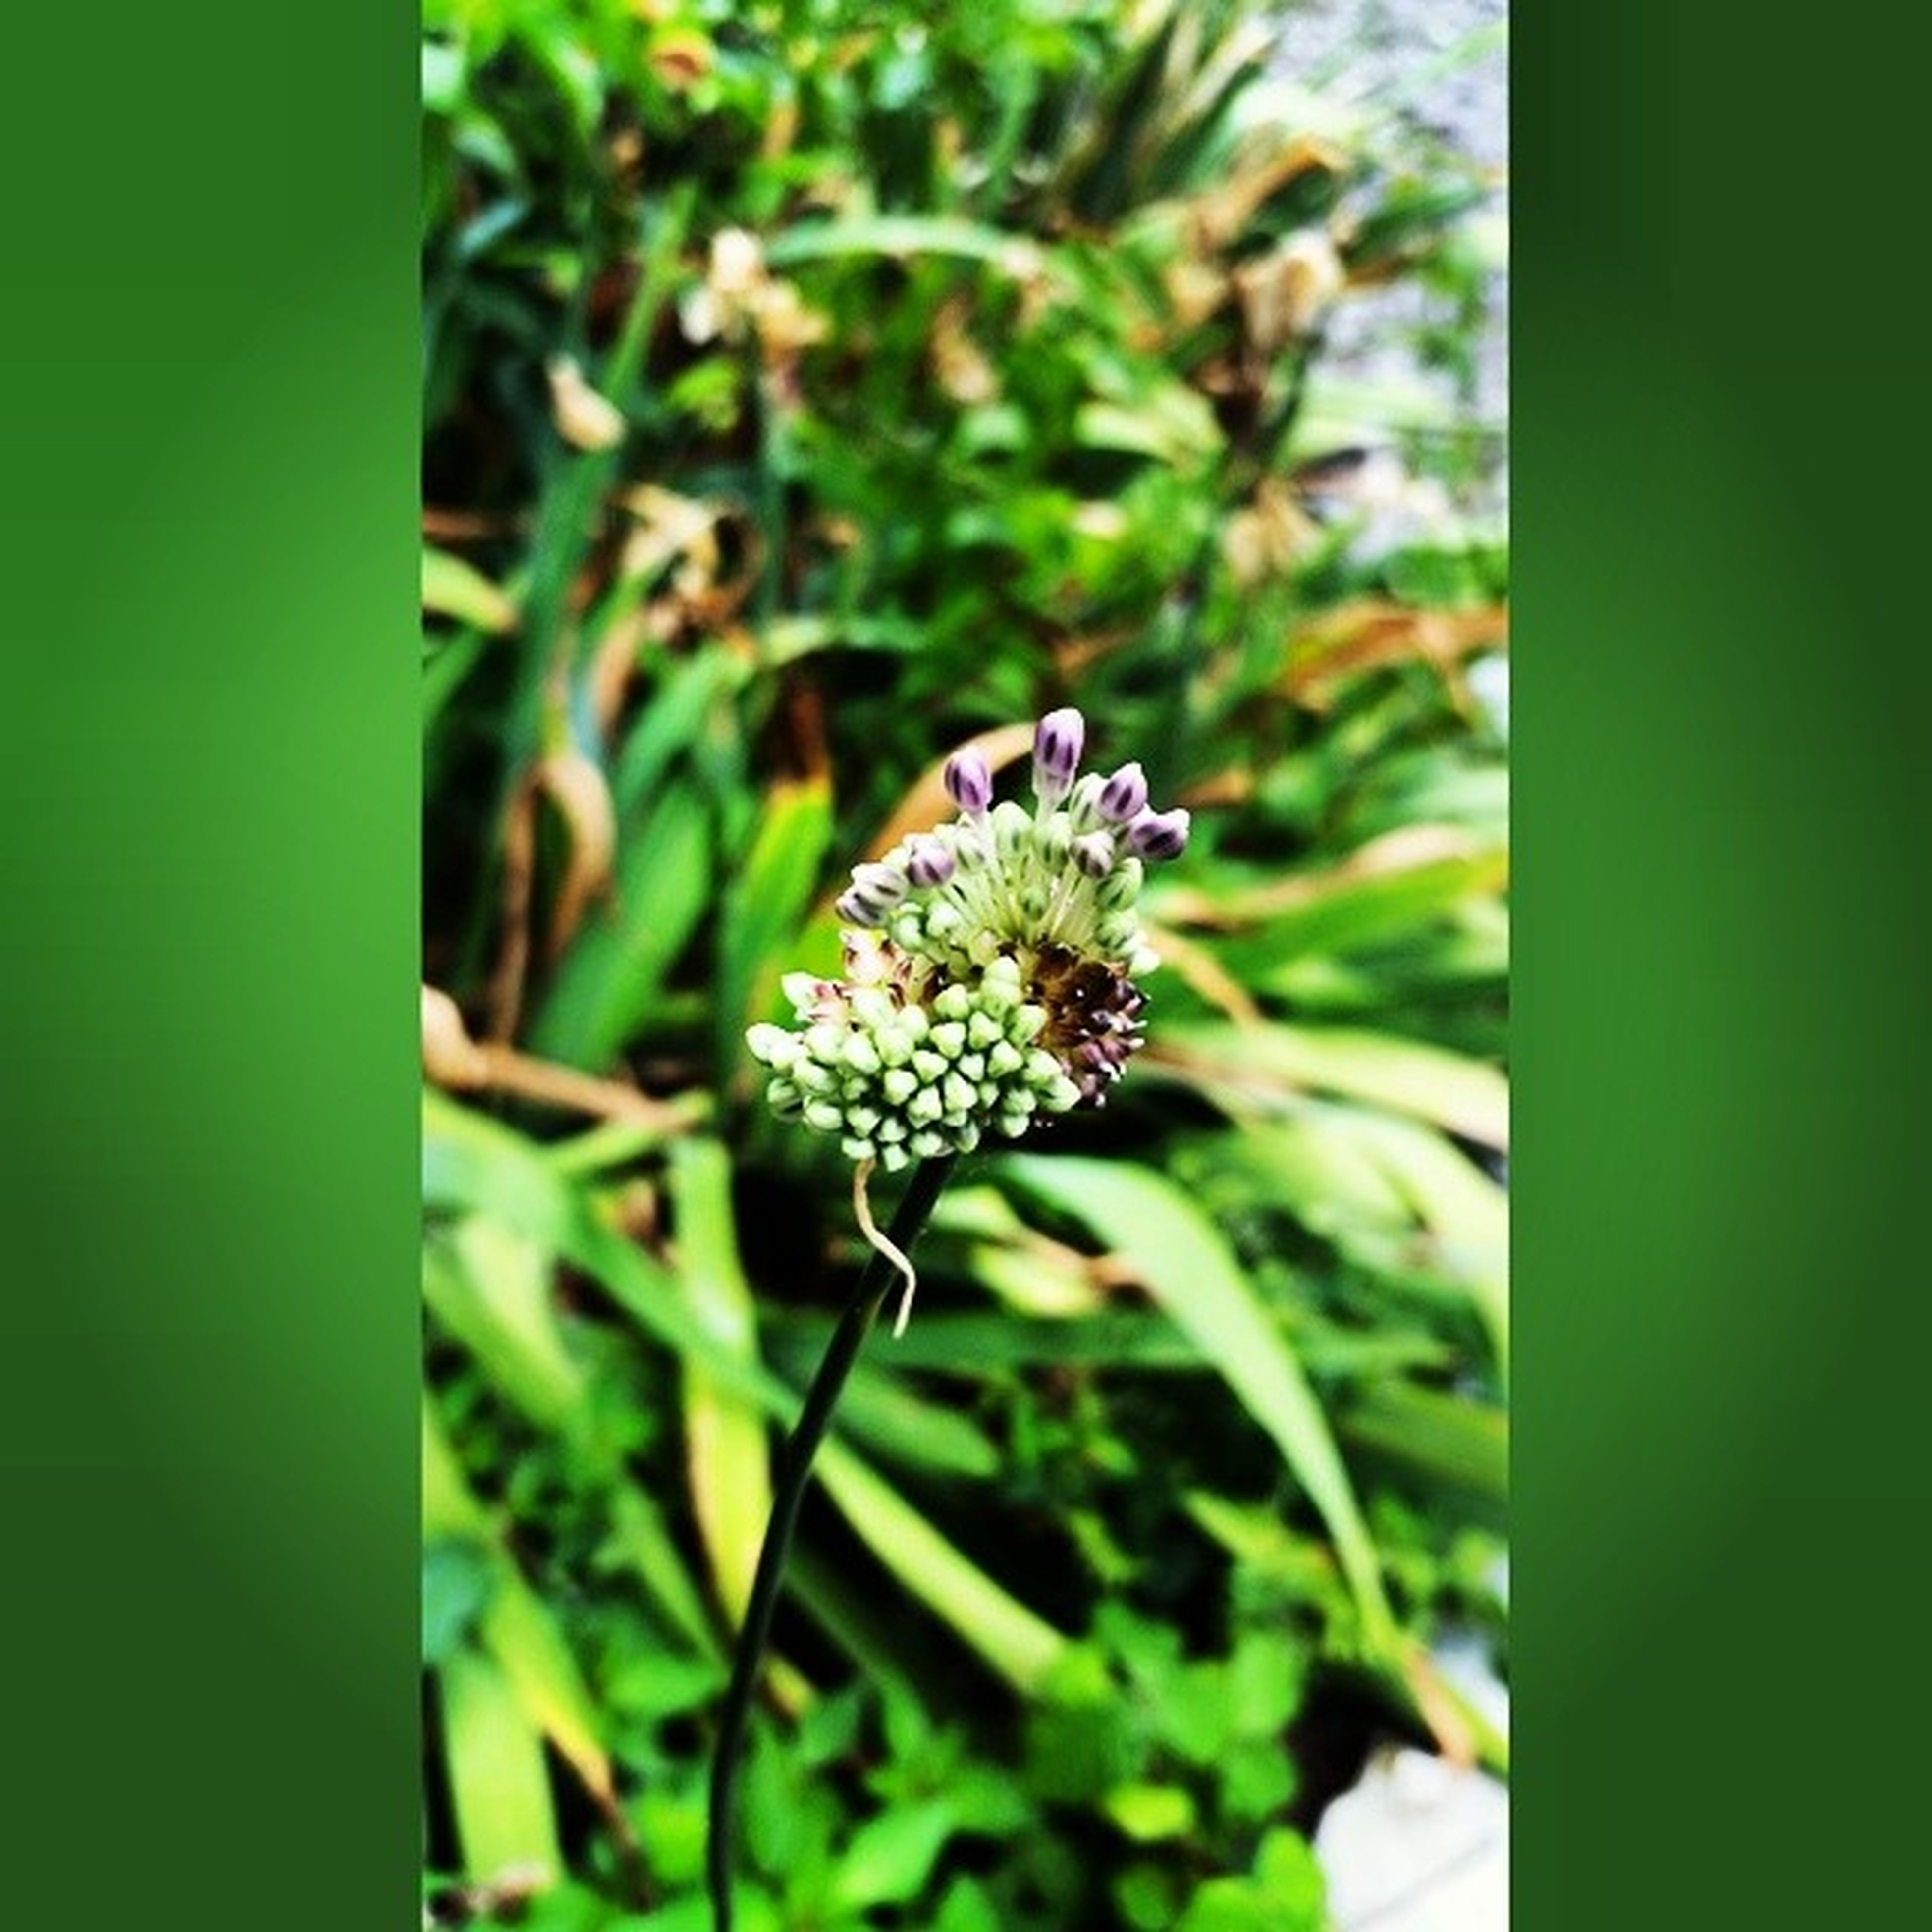 flower, growth, freshness, plant, fragility, close-up, beauty in nature, focus on foreground, nature, green color, white color, flower head, petal, stem, selective focus, bud, leaf, blooming, day, botany